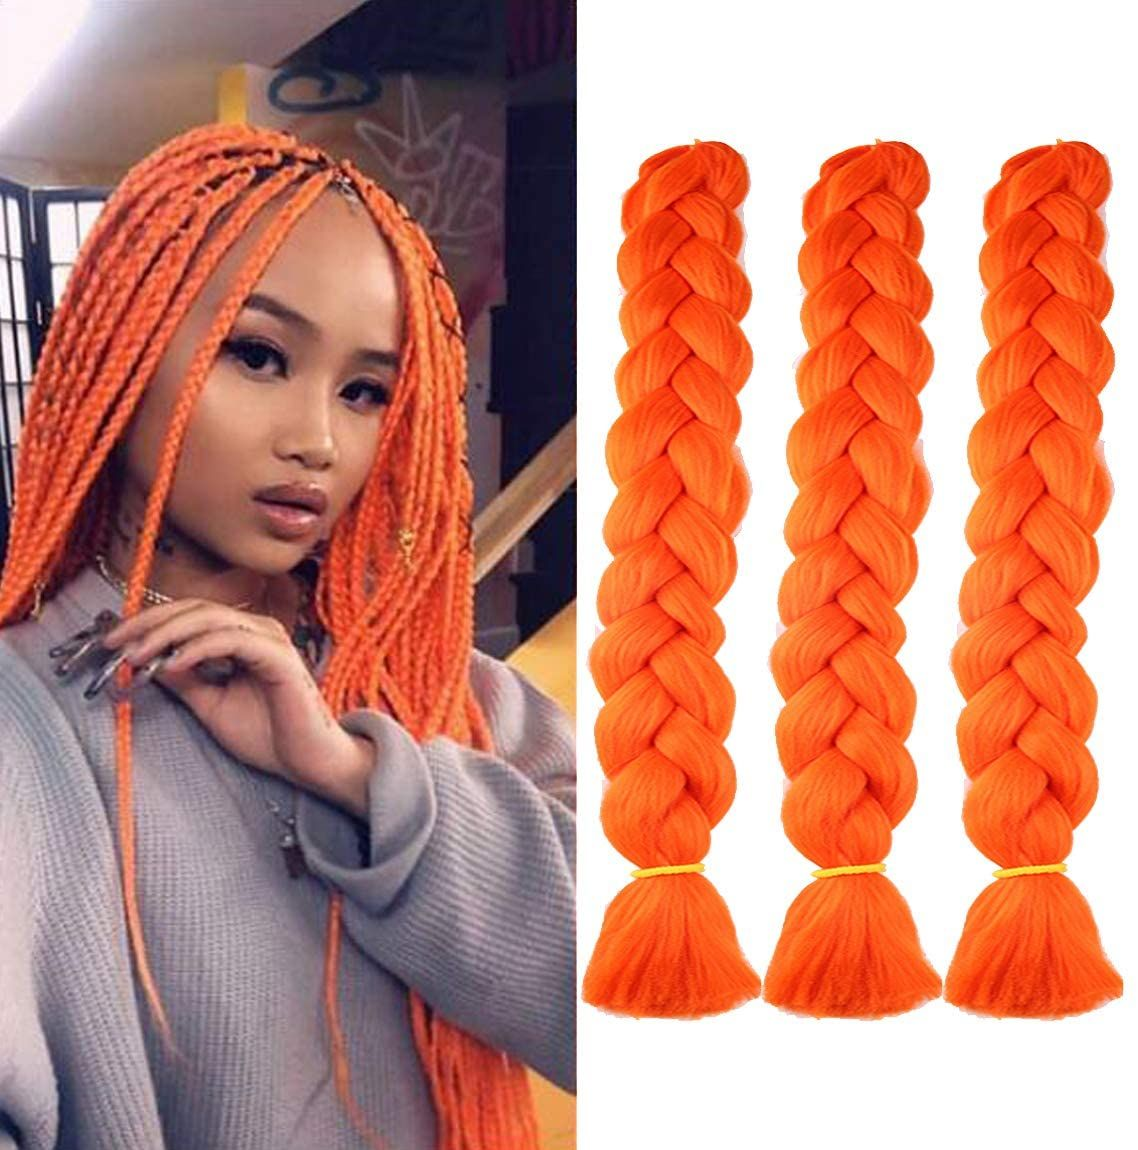 Orange Hair Extensions Trancas Cabelo Trança Box Braids